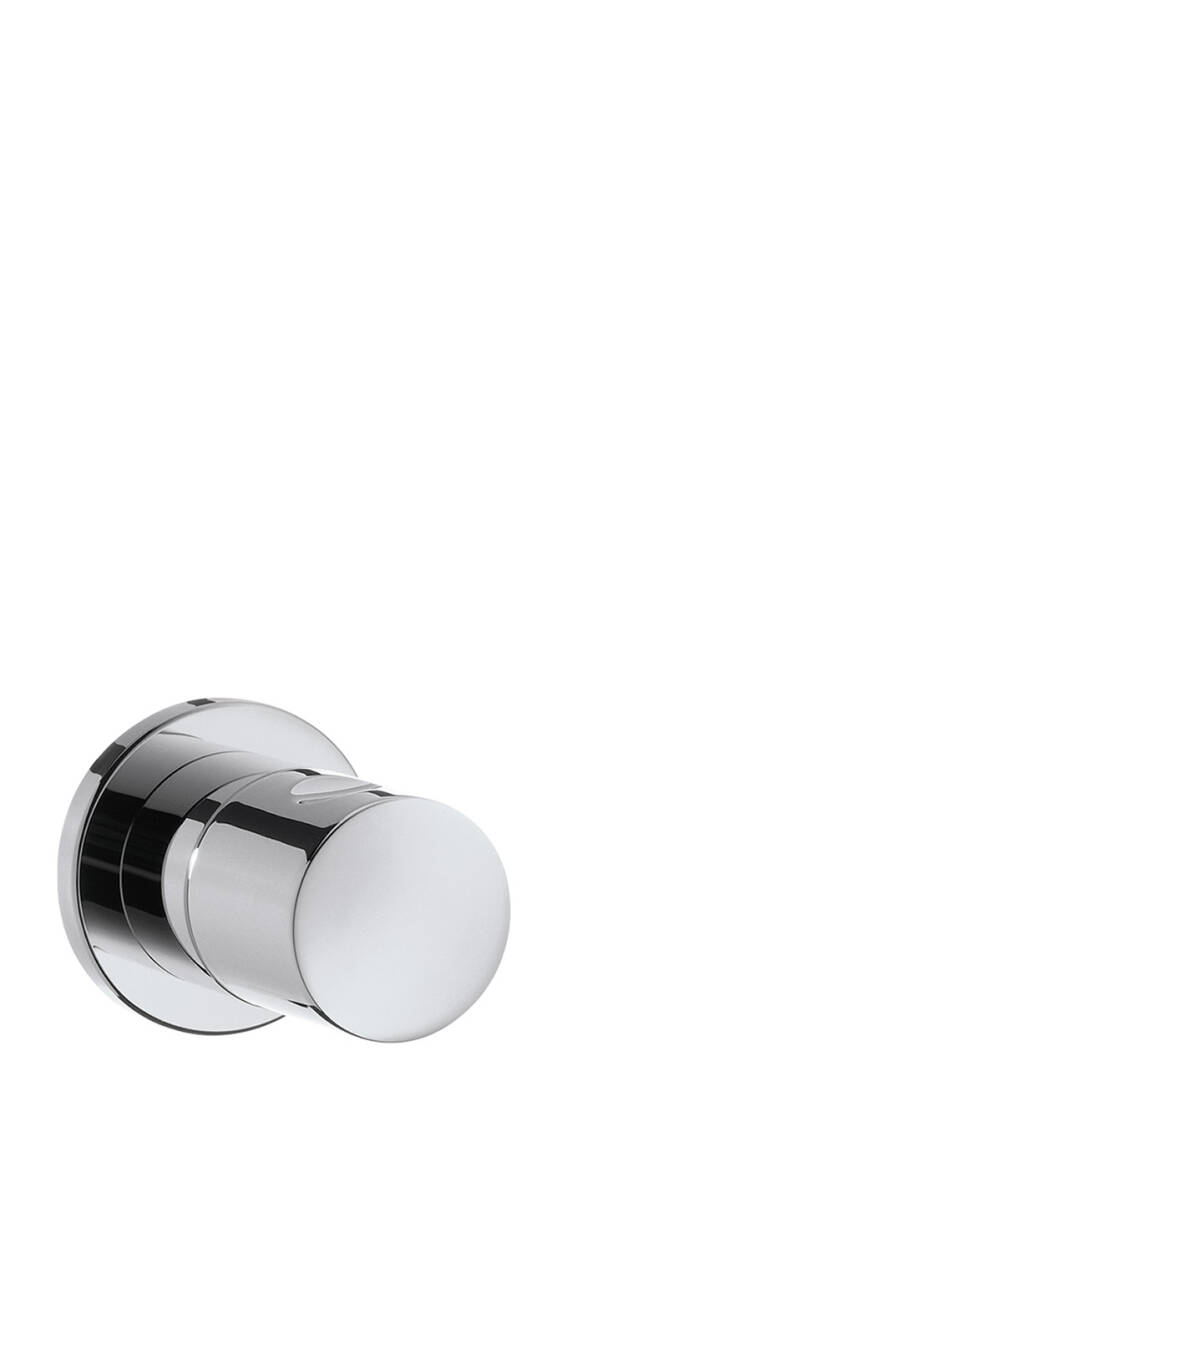 Shut-off valve for concealed installation, Chrome, 38976000